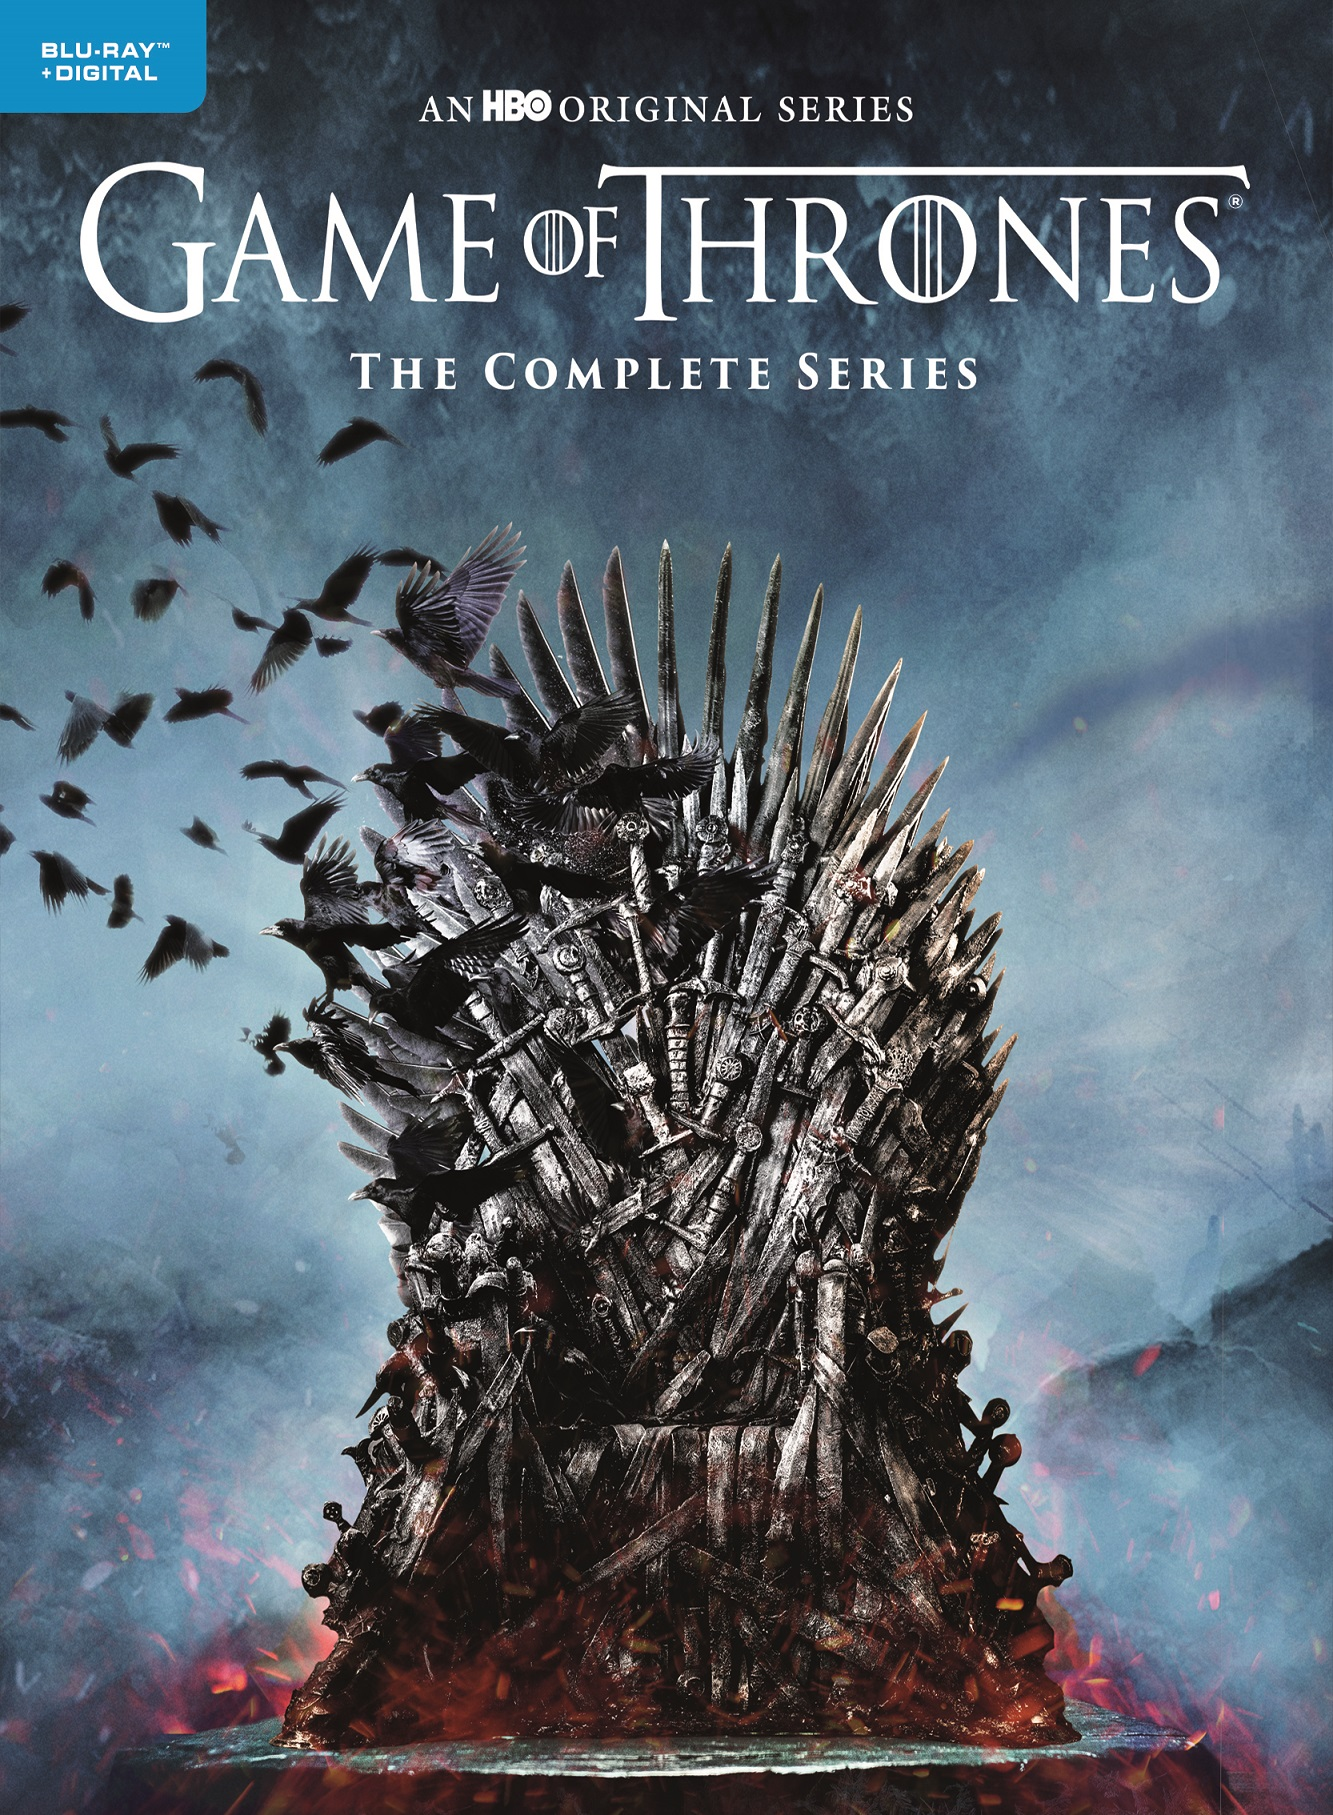 Games Of Thrones Season 8 Episode 1 Streaming : games, thrones, season, episode, streaming, Thrones:, Complete, Collection', Season, Blu-Ray, Arrive, Year!, Watchers, Thrones, Community, Breaking, News,, Casting,, Commentary